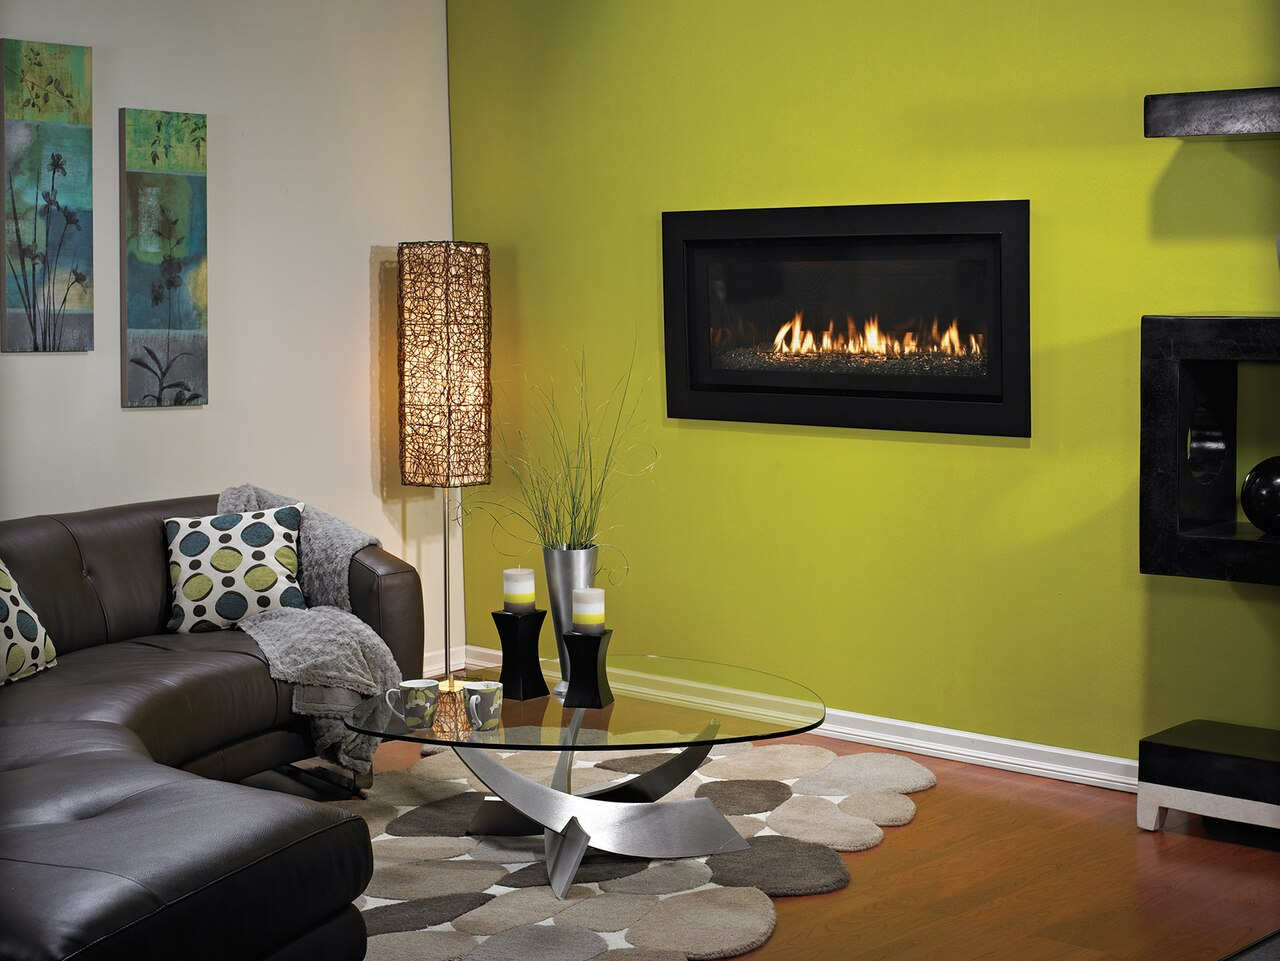 Empire DVLL41FP92N Boulevard Contemporary Direct Vent Fireplace